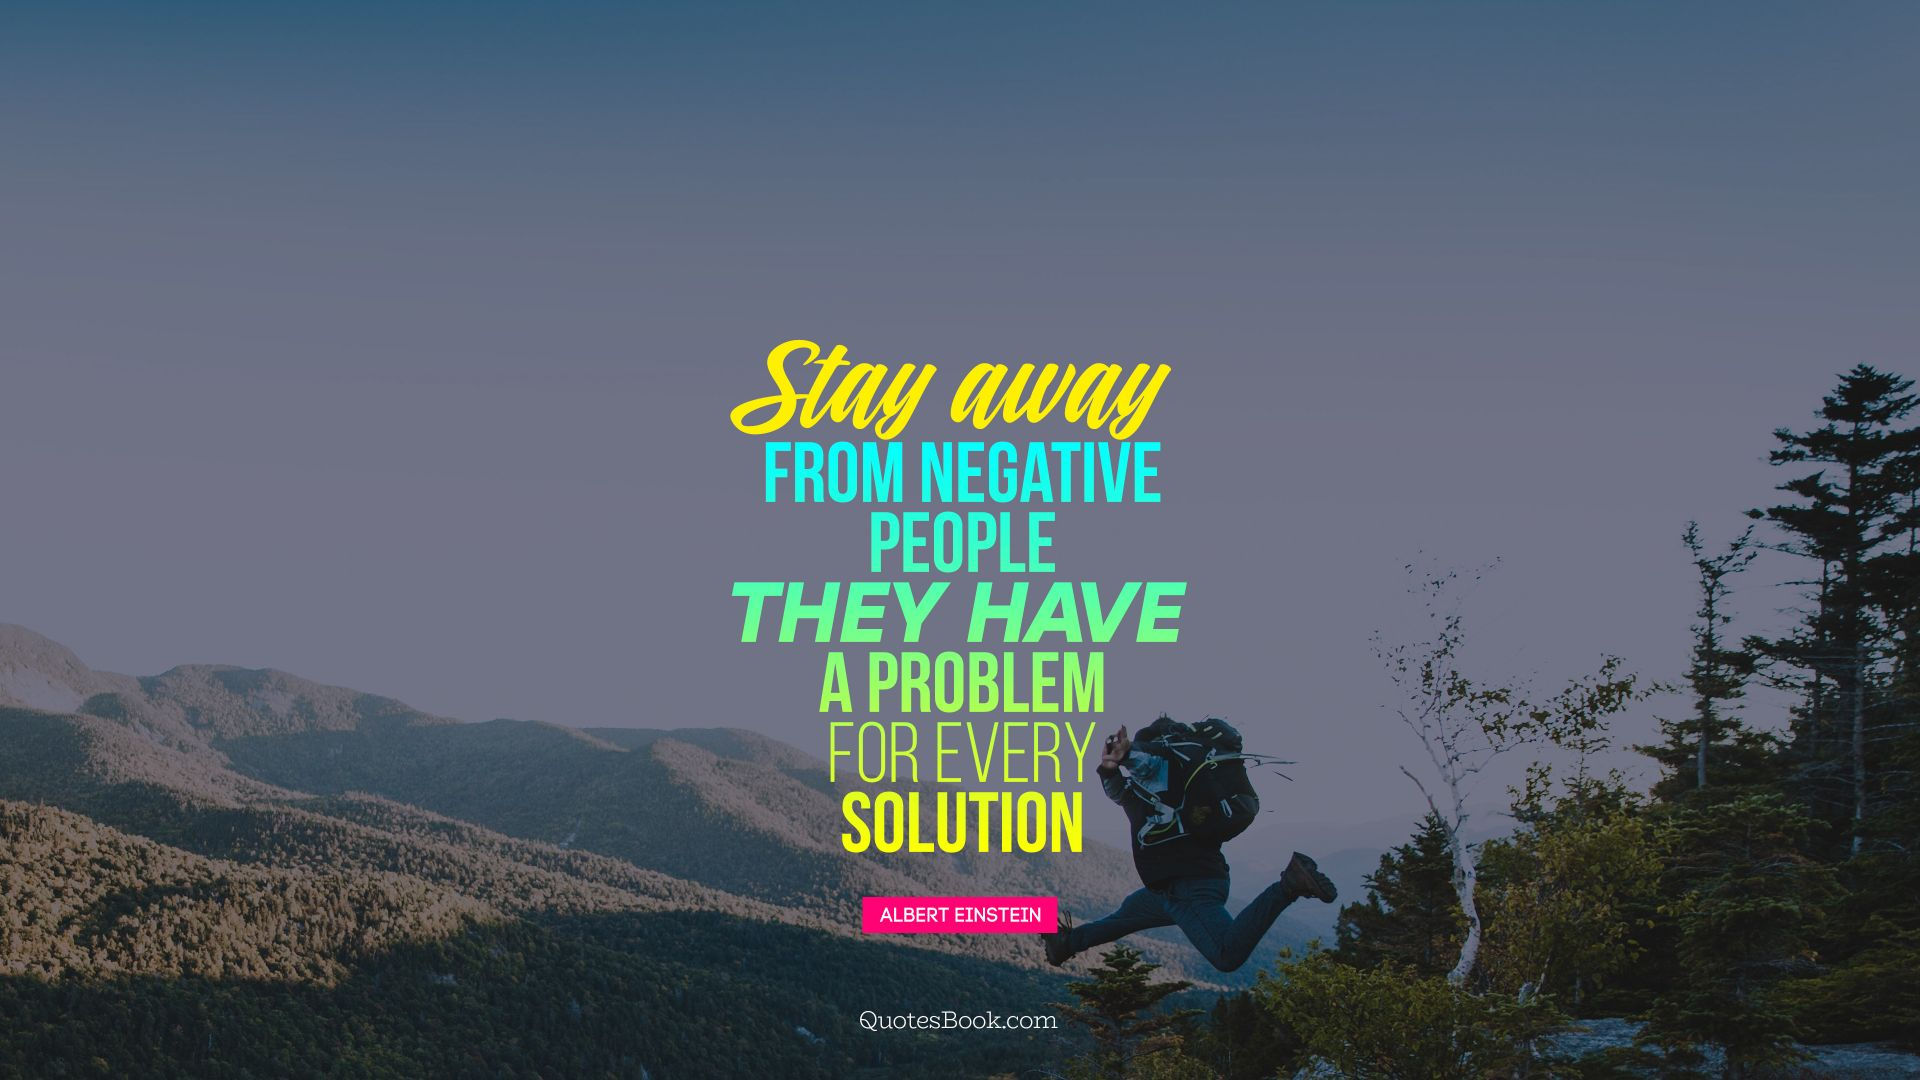 Stay away from negative people. They have a problem for every Solution. - Quote by Albert Einstein